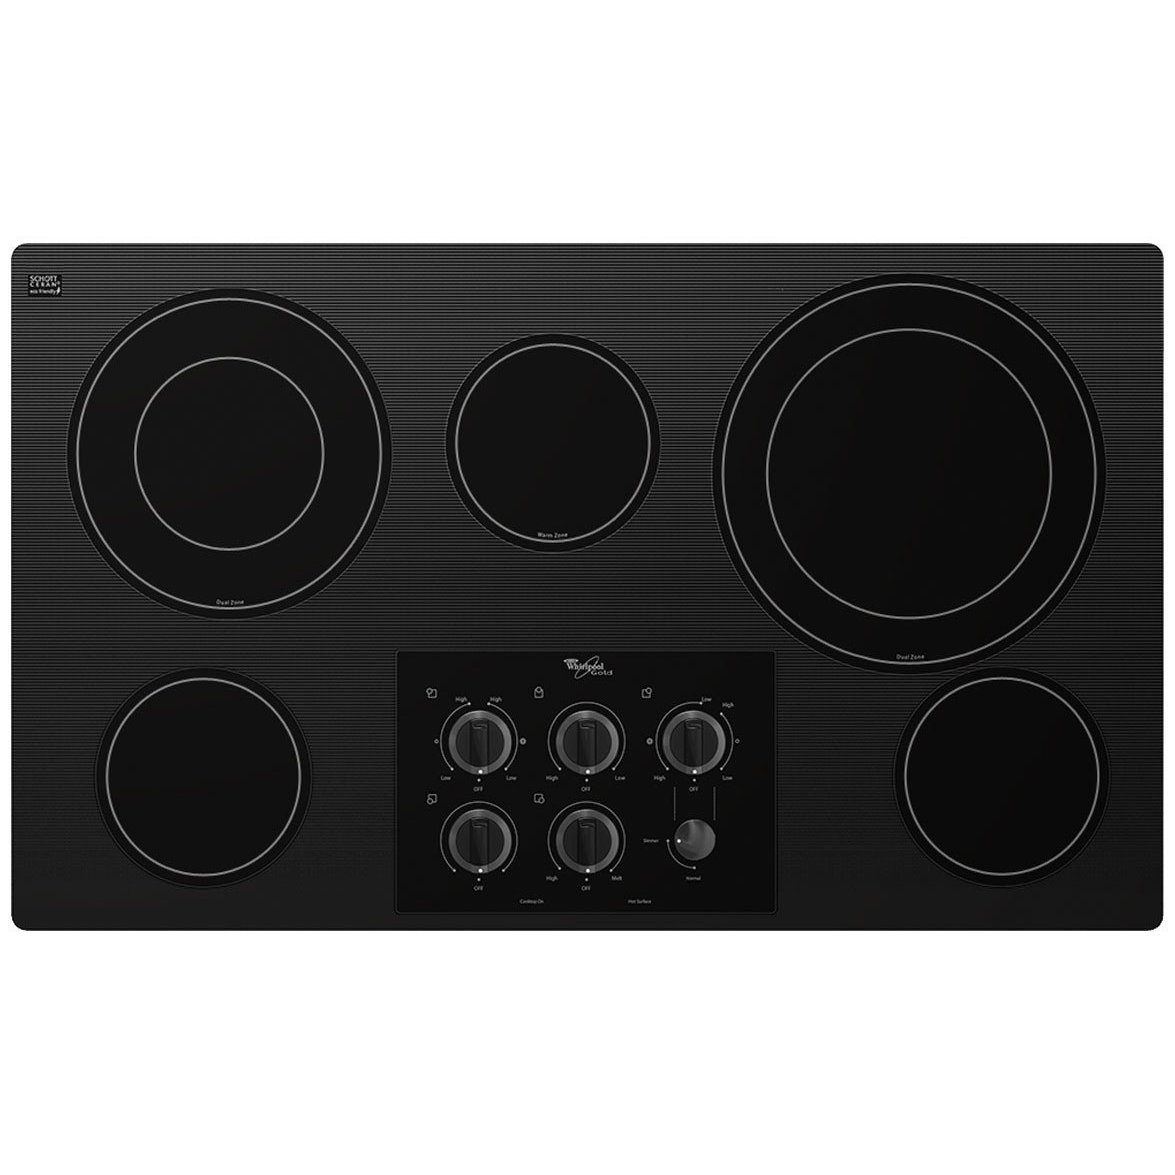 Whirlpool Electric Glass Cooktop ~ Whirlpool g ce xb glass cooktop review houseandgardentech